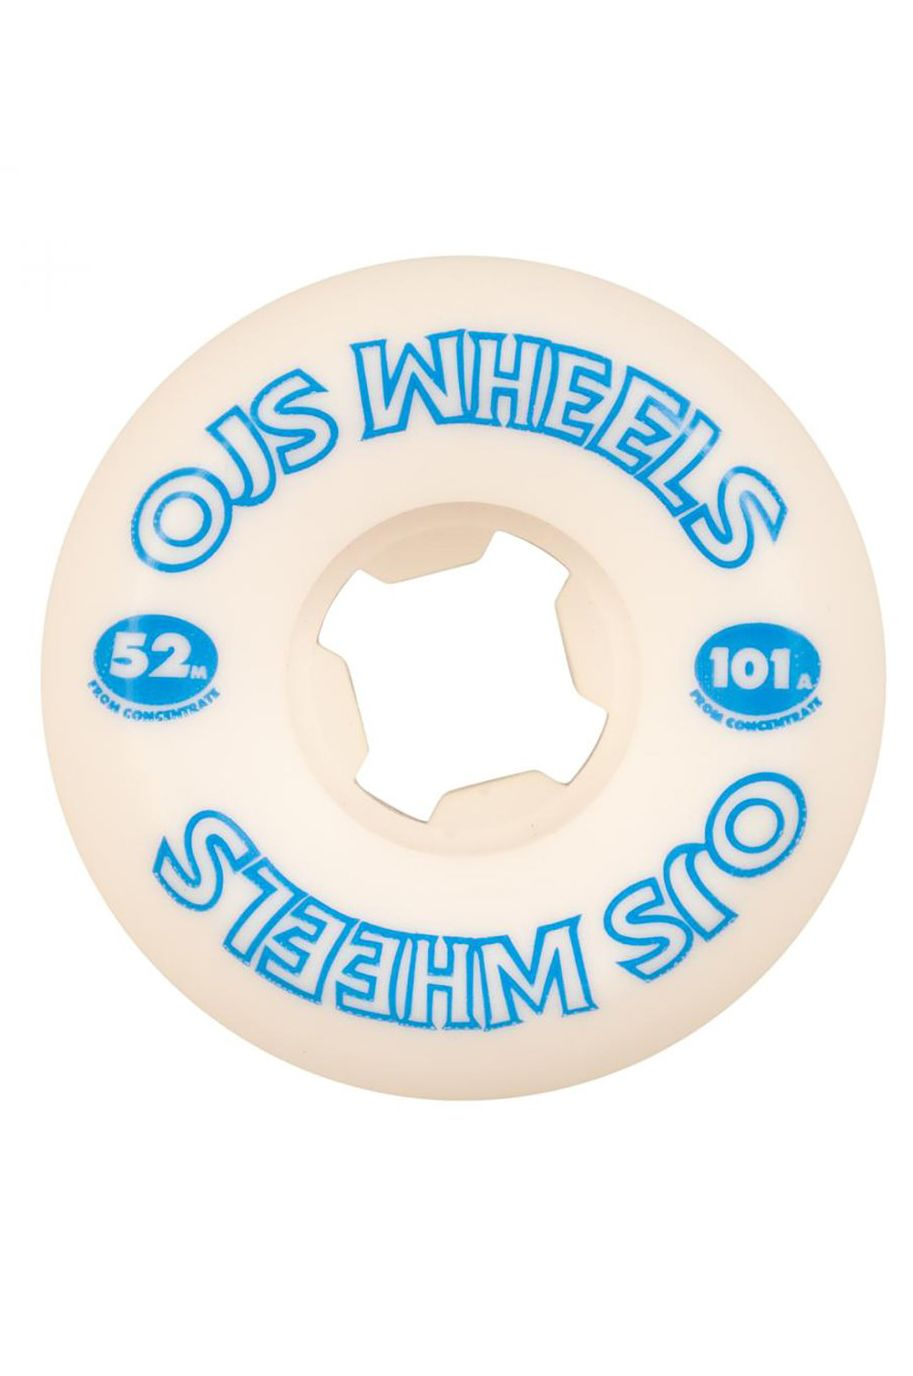 OJ Wheels Skate Wheels 52MM FROM CONCENTRATE HARDLINE 101A White